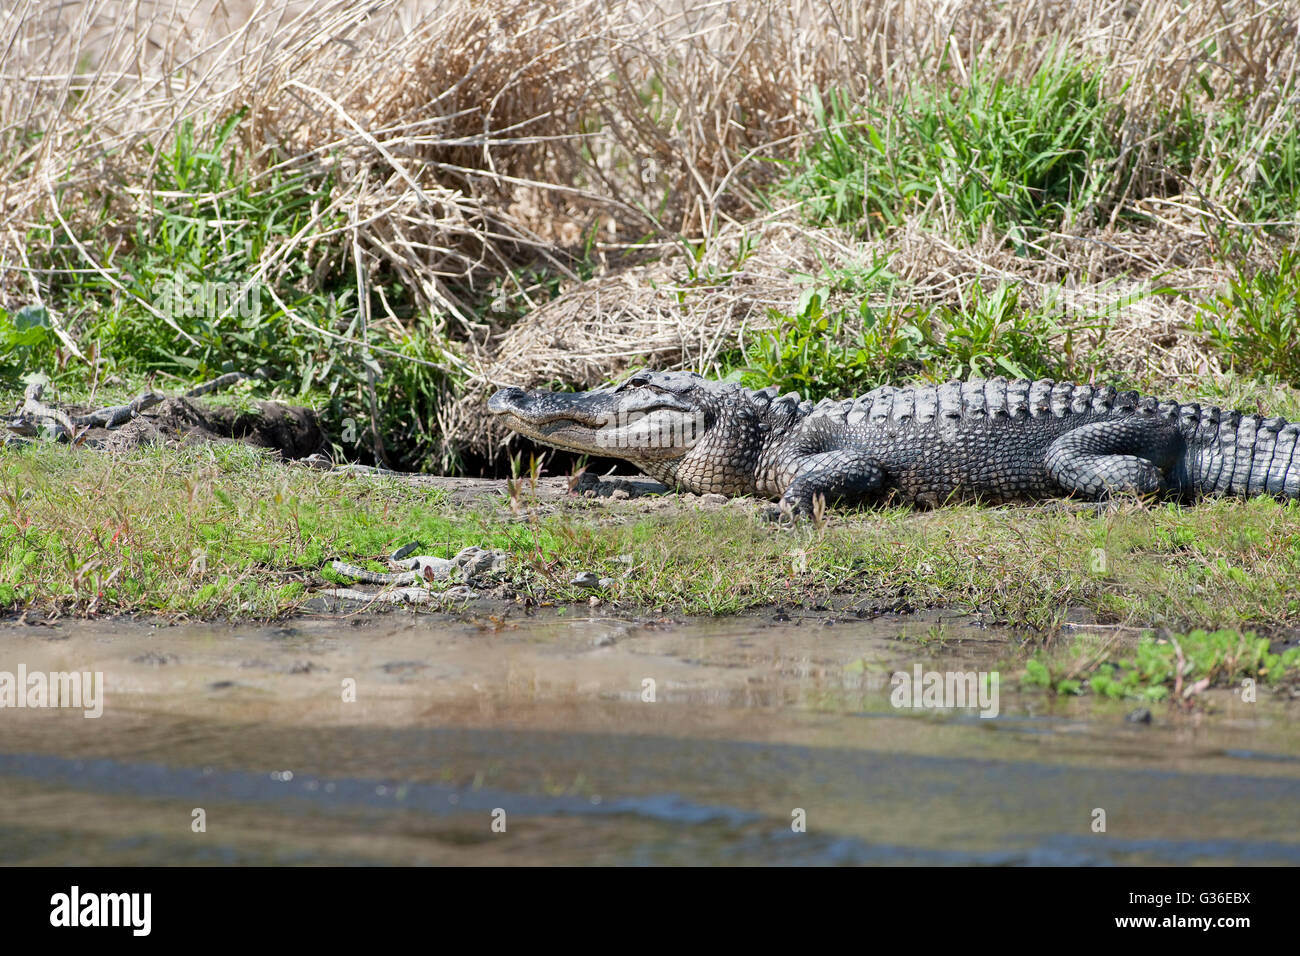 North America, USA, Florida, Myakka River State Park, alligators on shore with young beside den - Stock Image